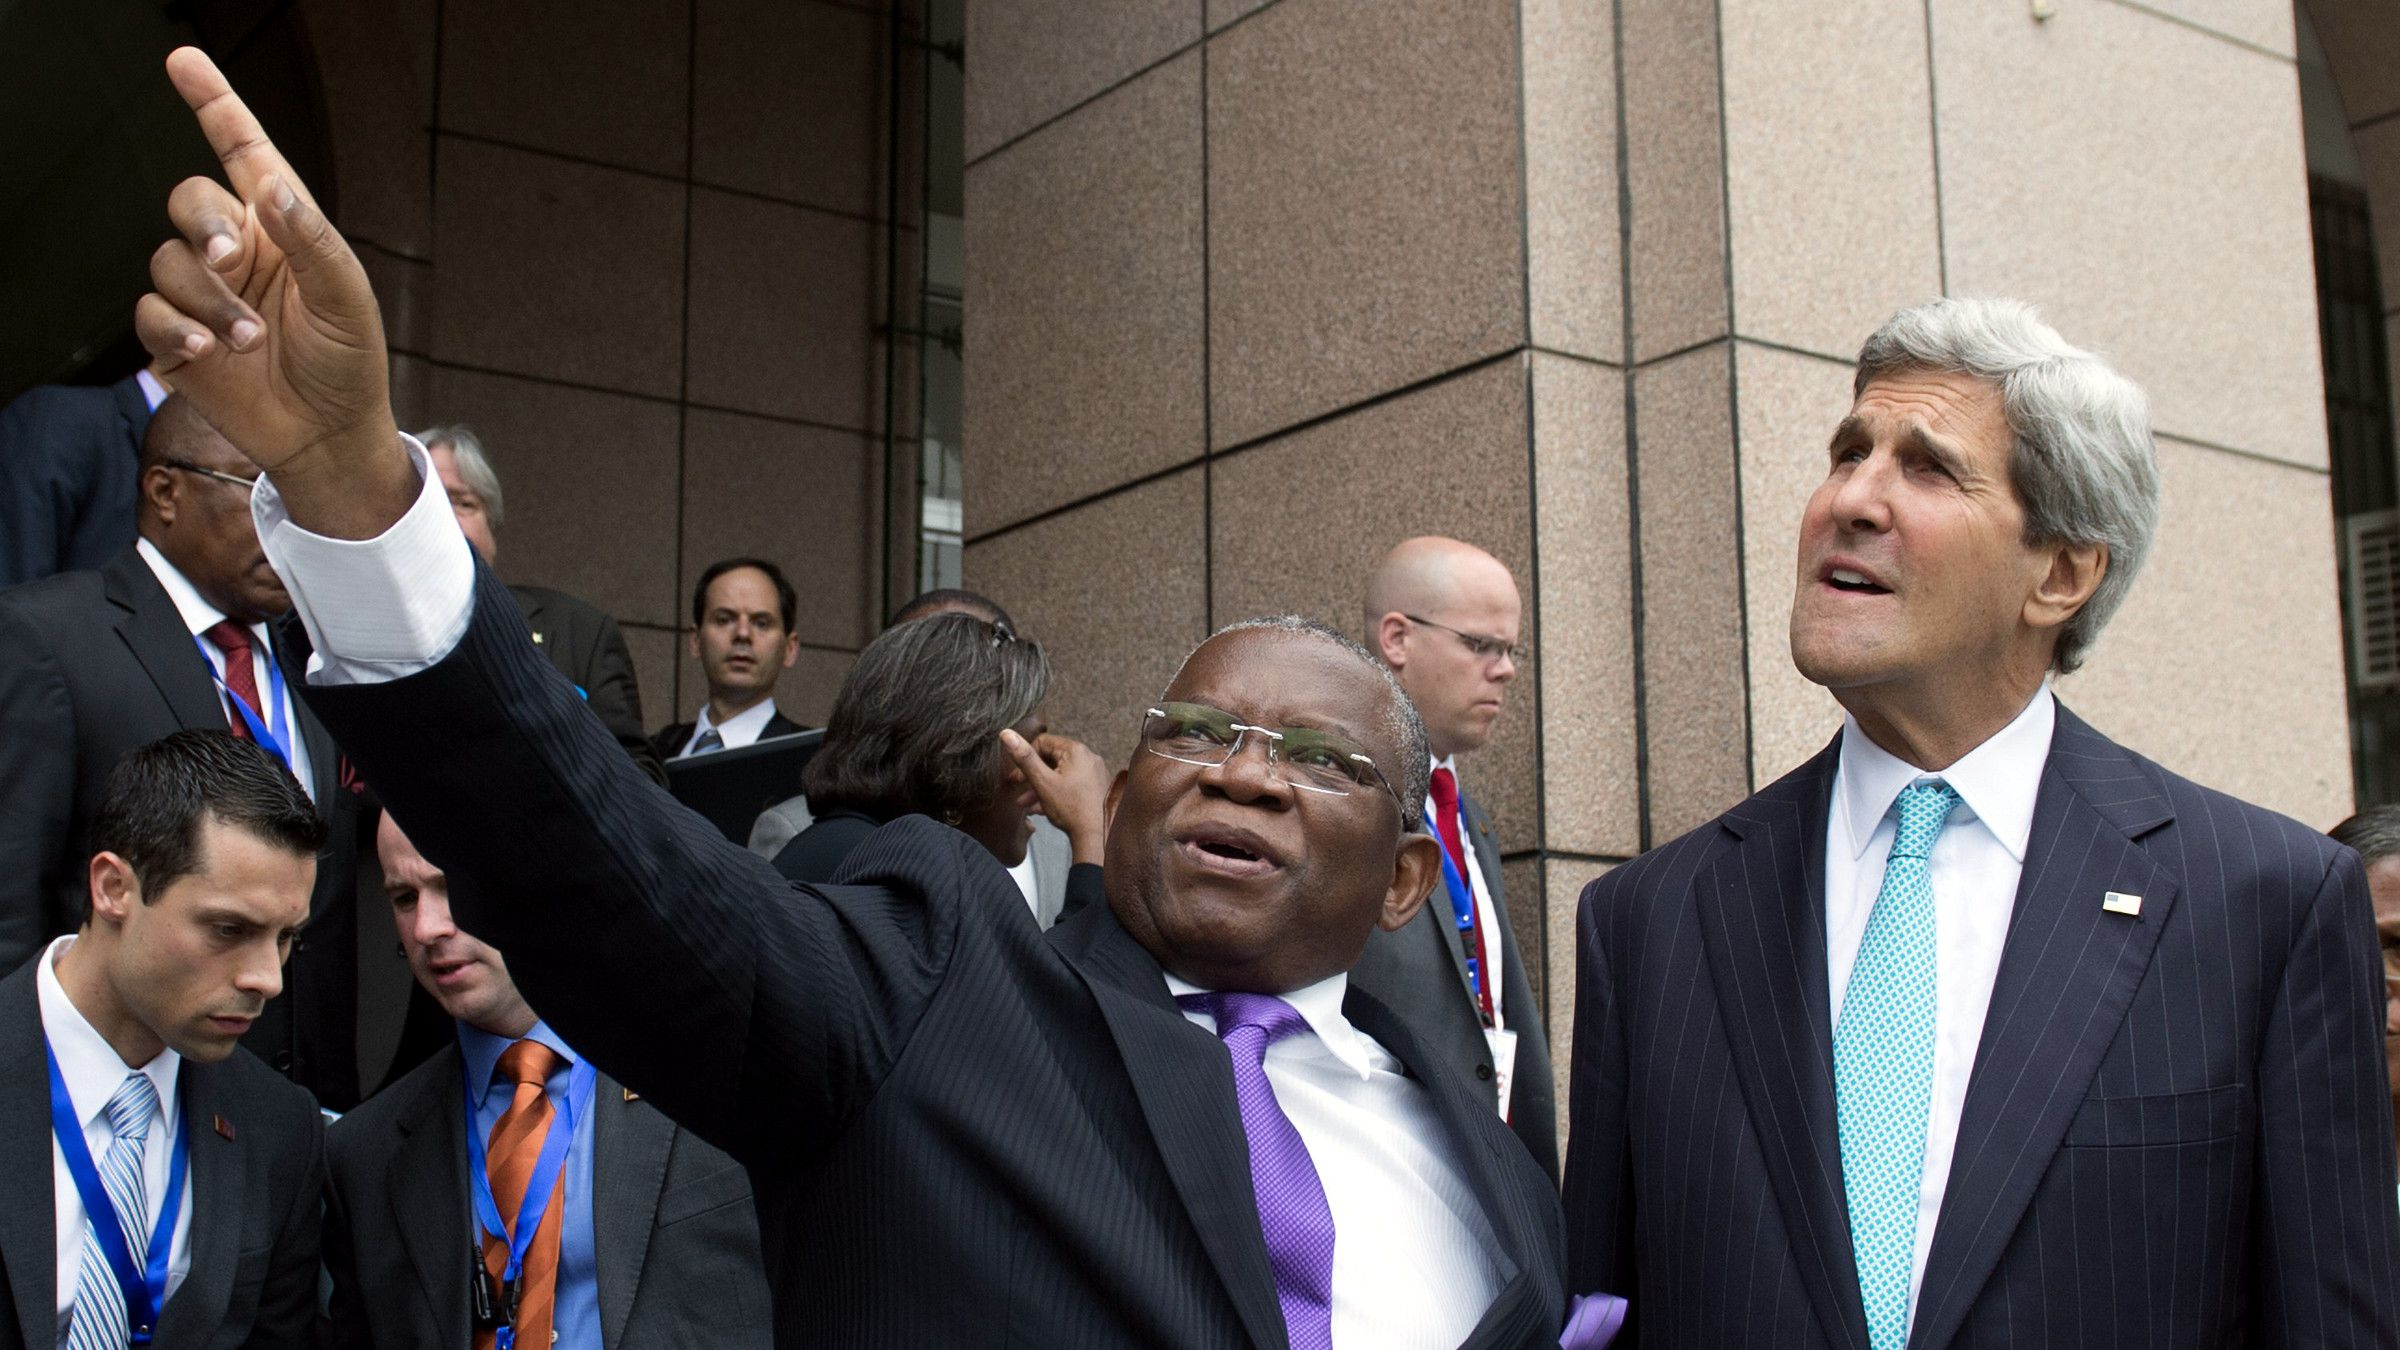 Foreign Minister Georges Rebelo Chicoti of Angola, left, shows US Secretary of State John Kerry nearby government buildings following meetings at the Ministry of Finance in Luanda, Angola, May 5, 2014. Kerry on May 4 praised oil-rich Angola's leadership role in efforts to solve long-drawn conflicts on the African continent.